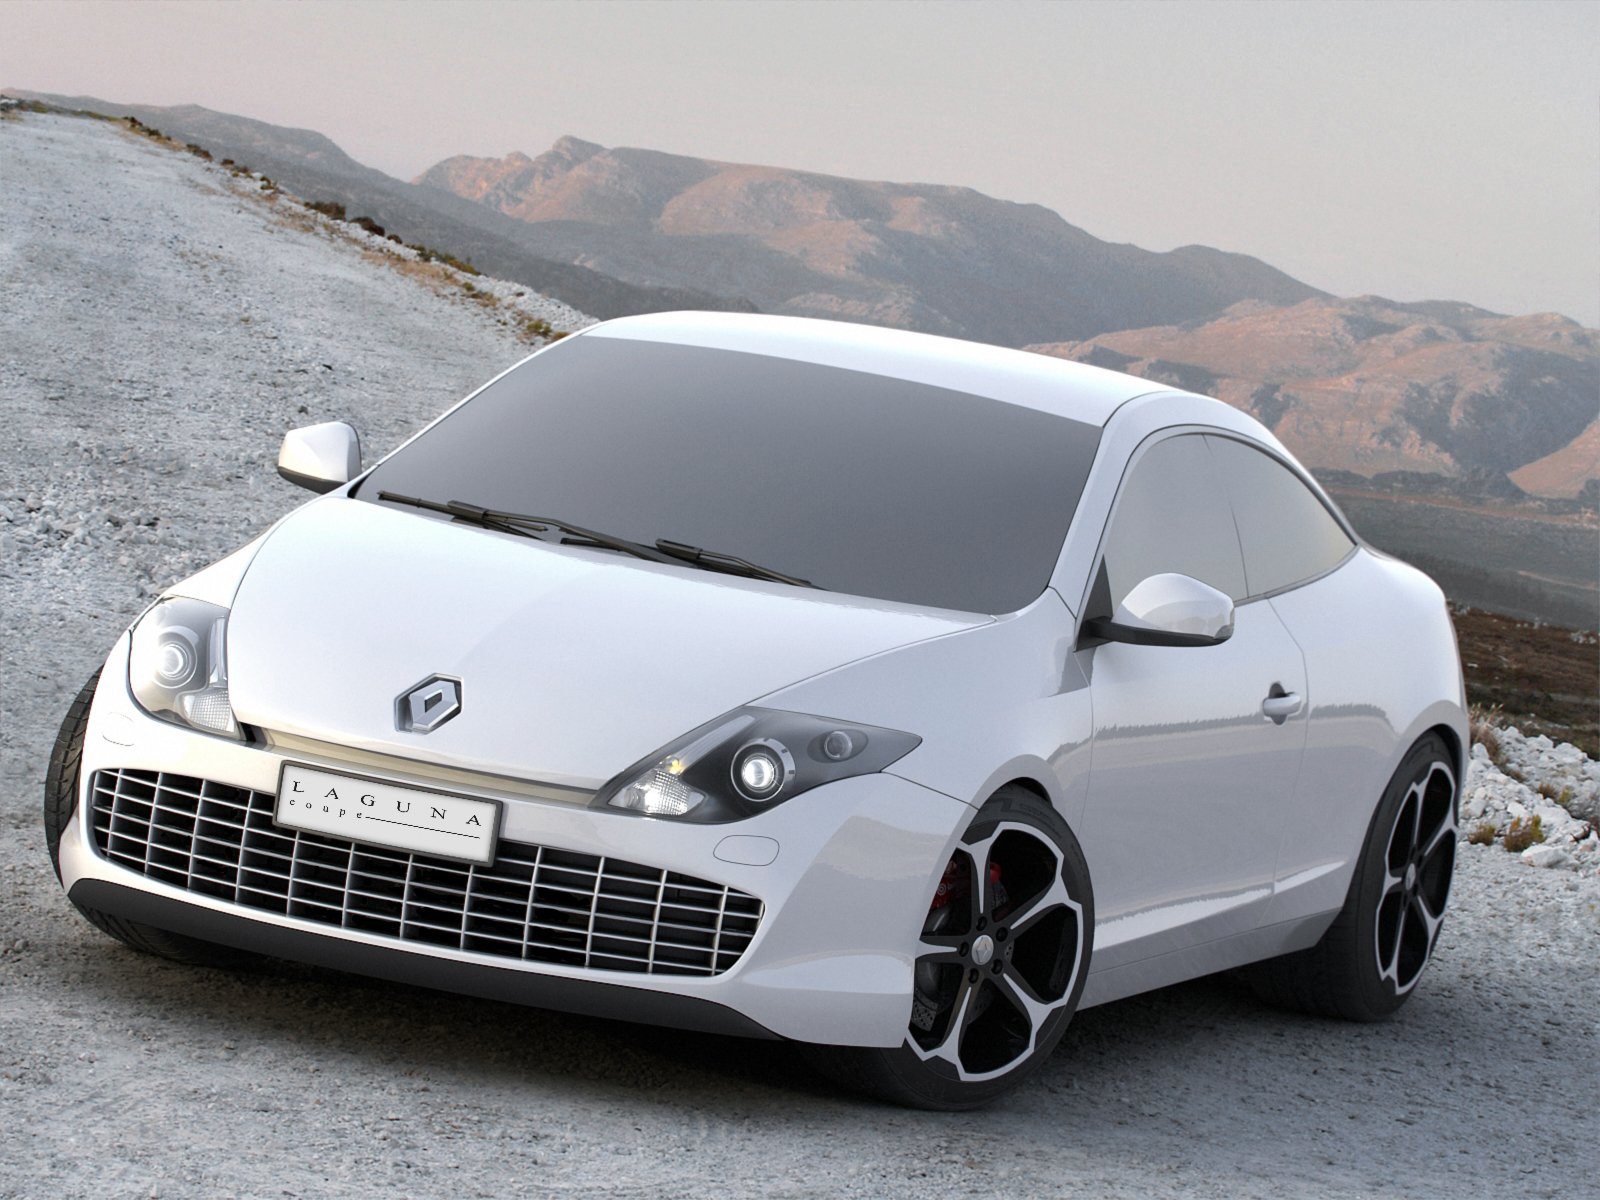 renault laguna iii coupe 2014 pictures